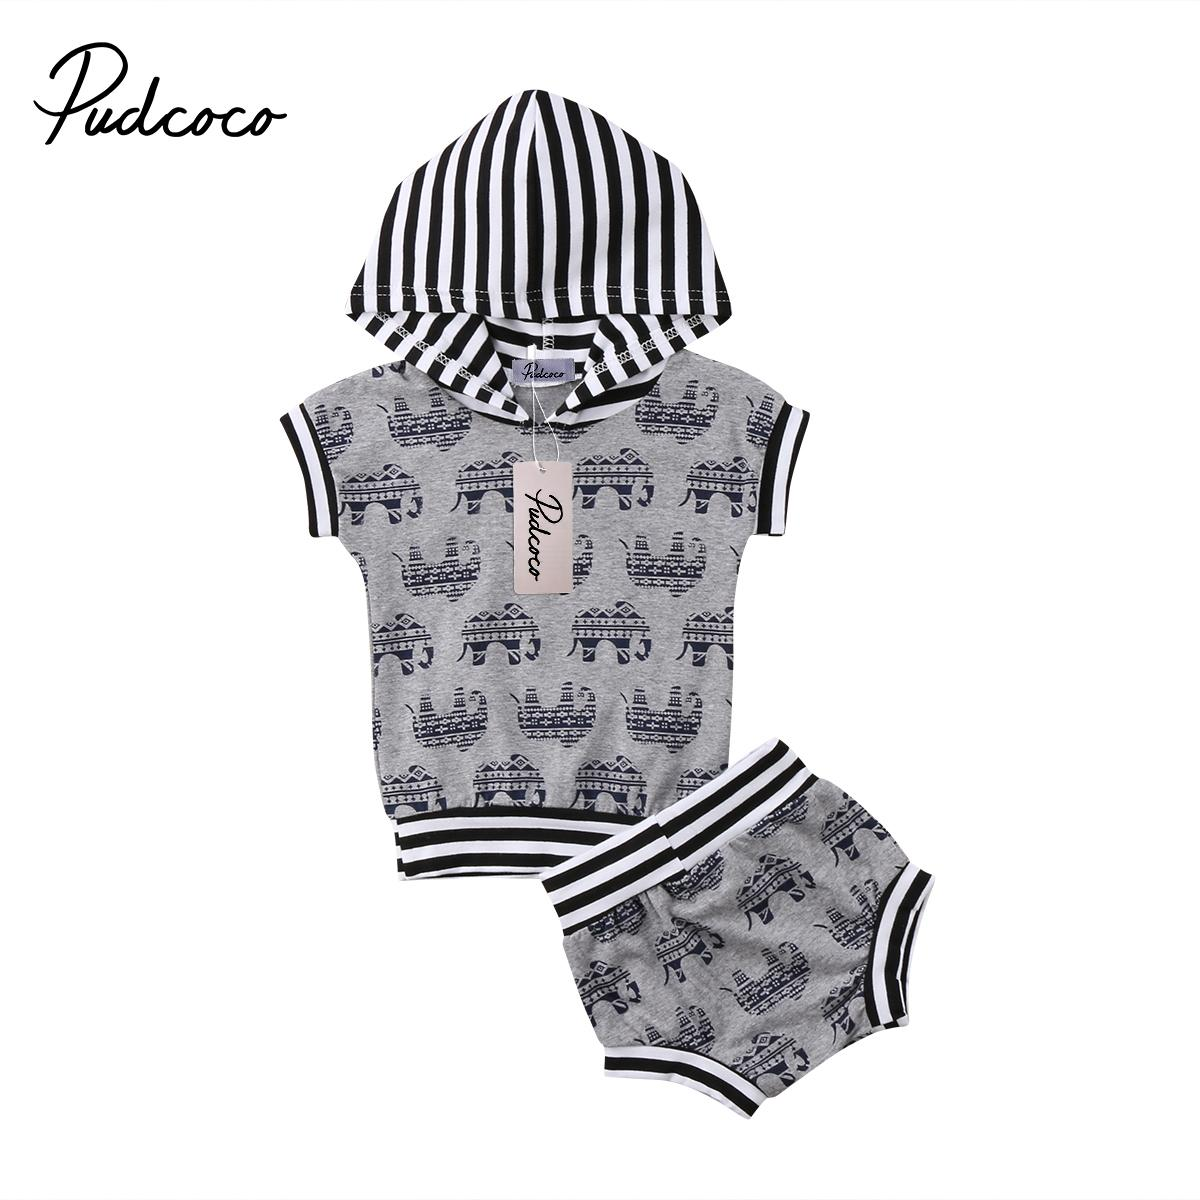 898cf156f Fashion Newborn Toddler Kids Baby Boy Girl Elephant Hoodie Hooded Tops  Shorts Outfits Clothes Set 0-24M